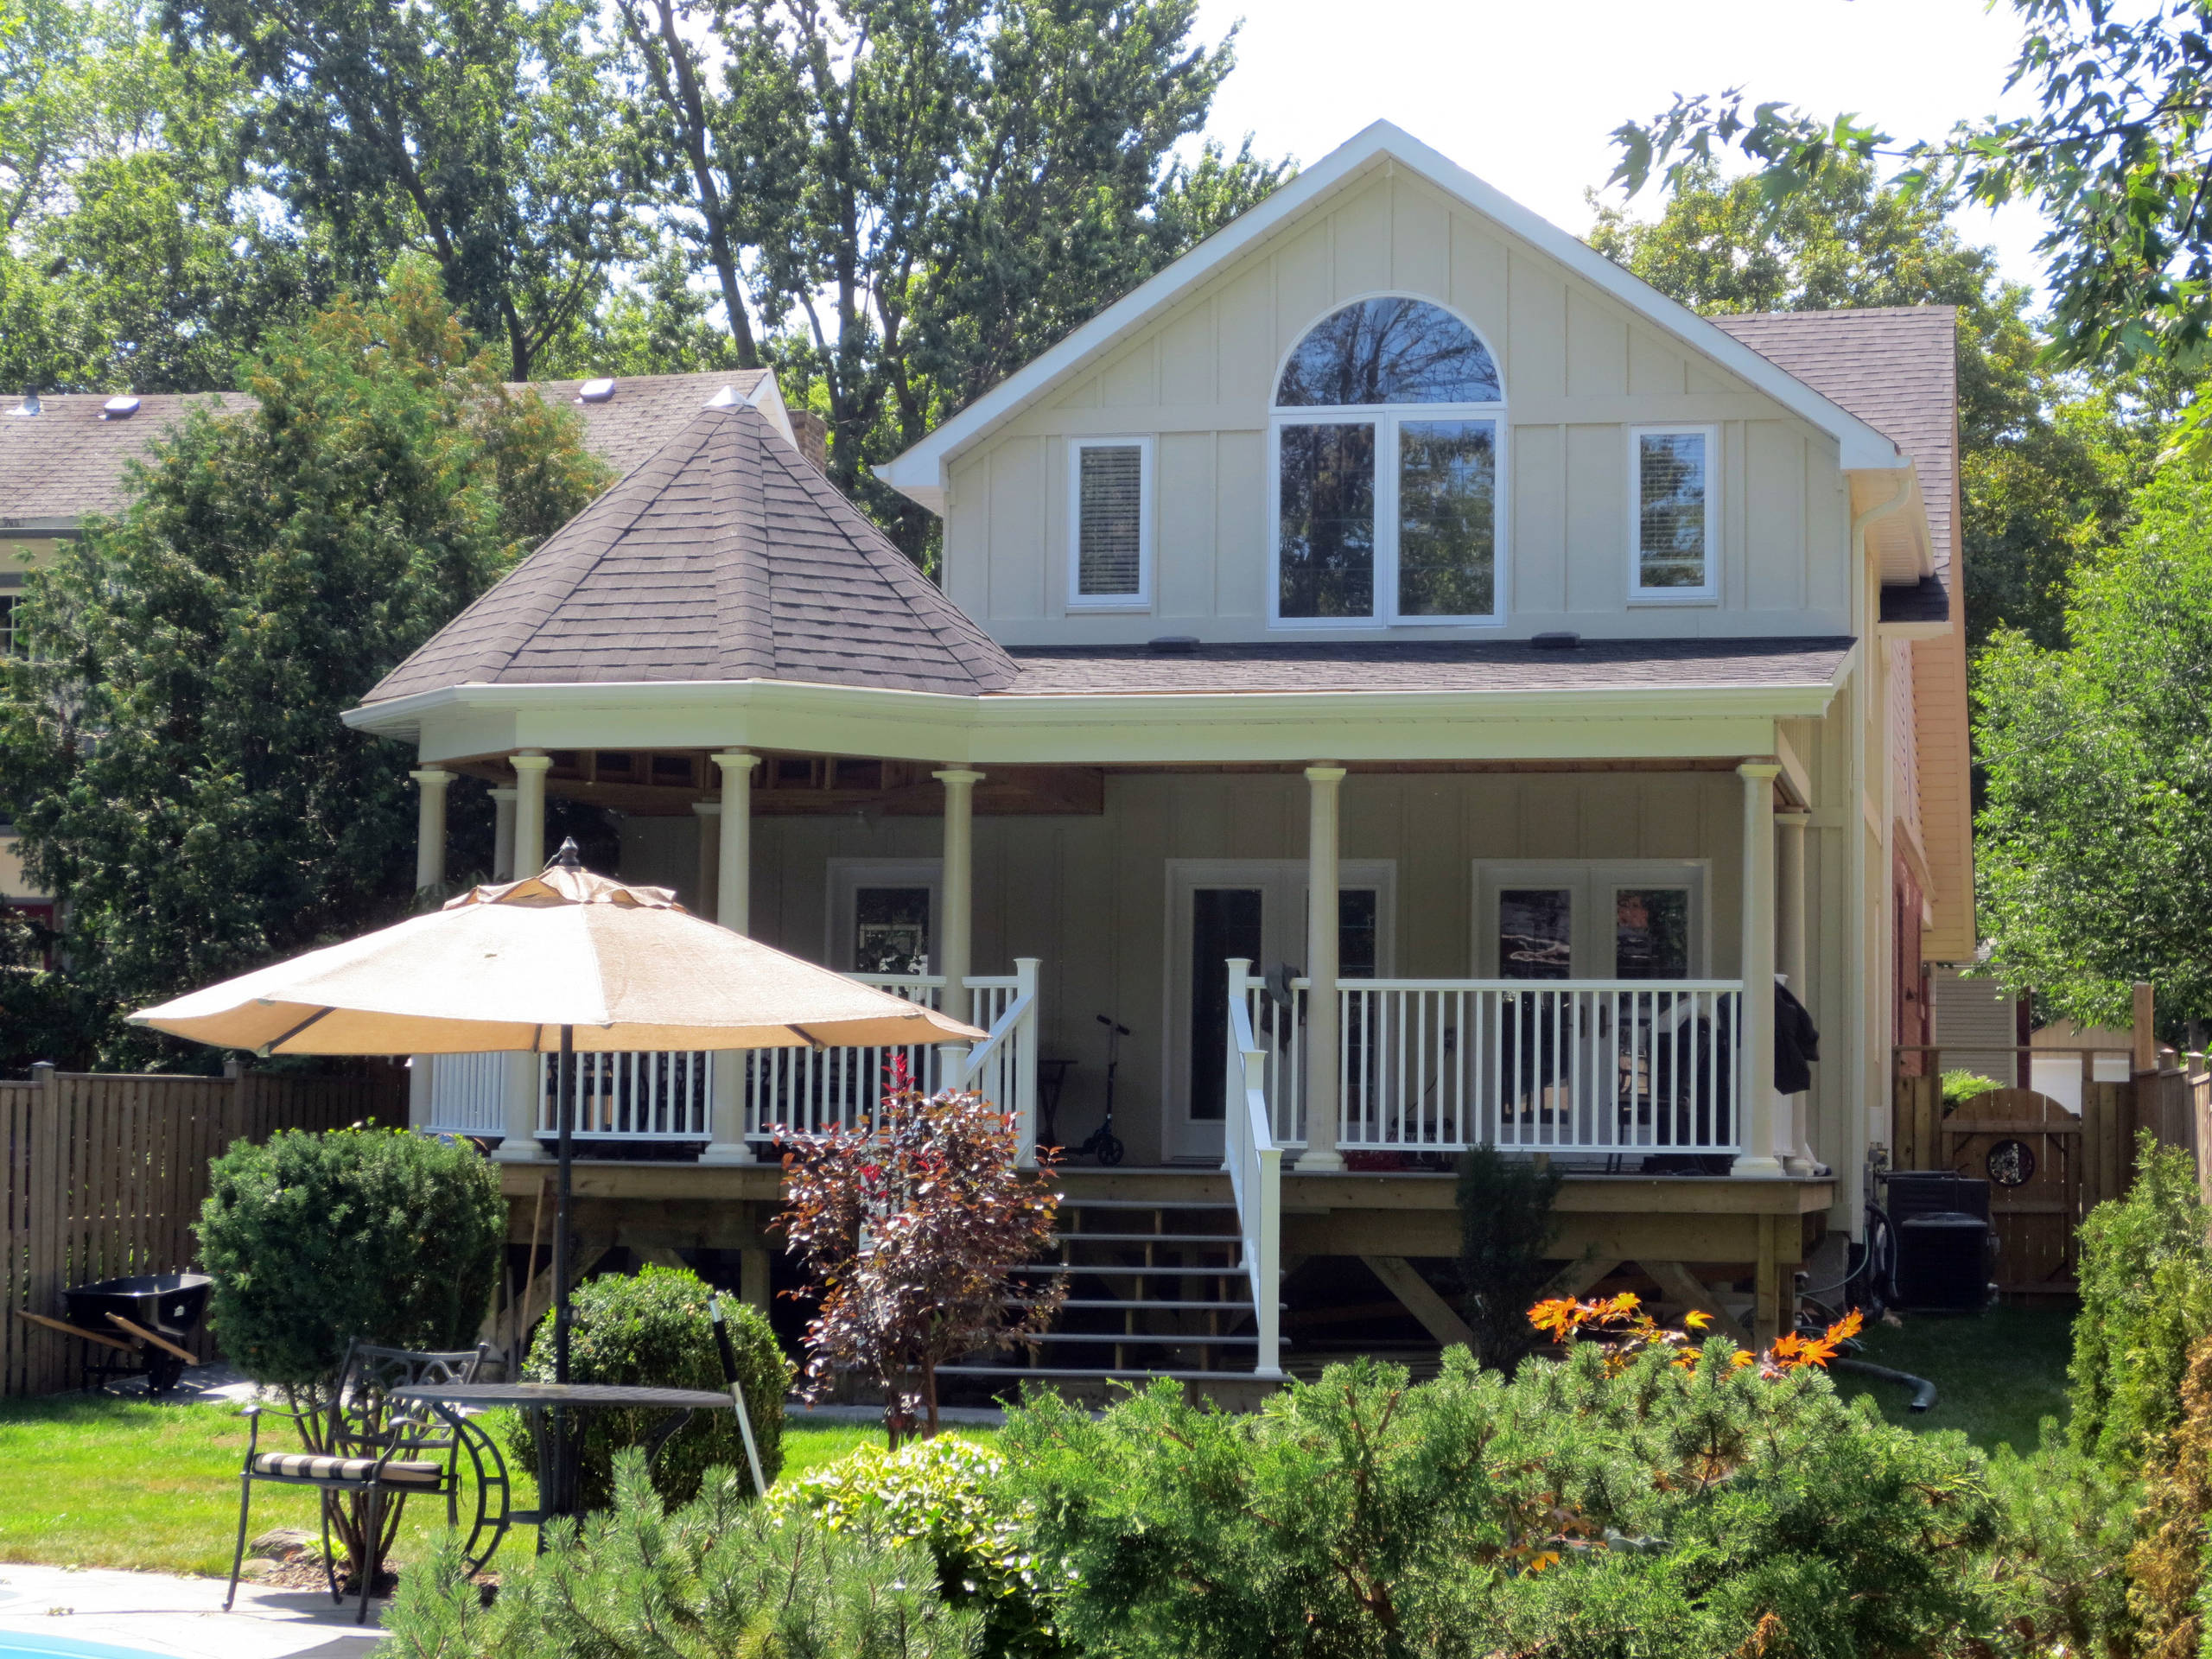 Mill, Brampton - Addition, porch and Gazebo on heritage home